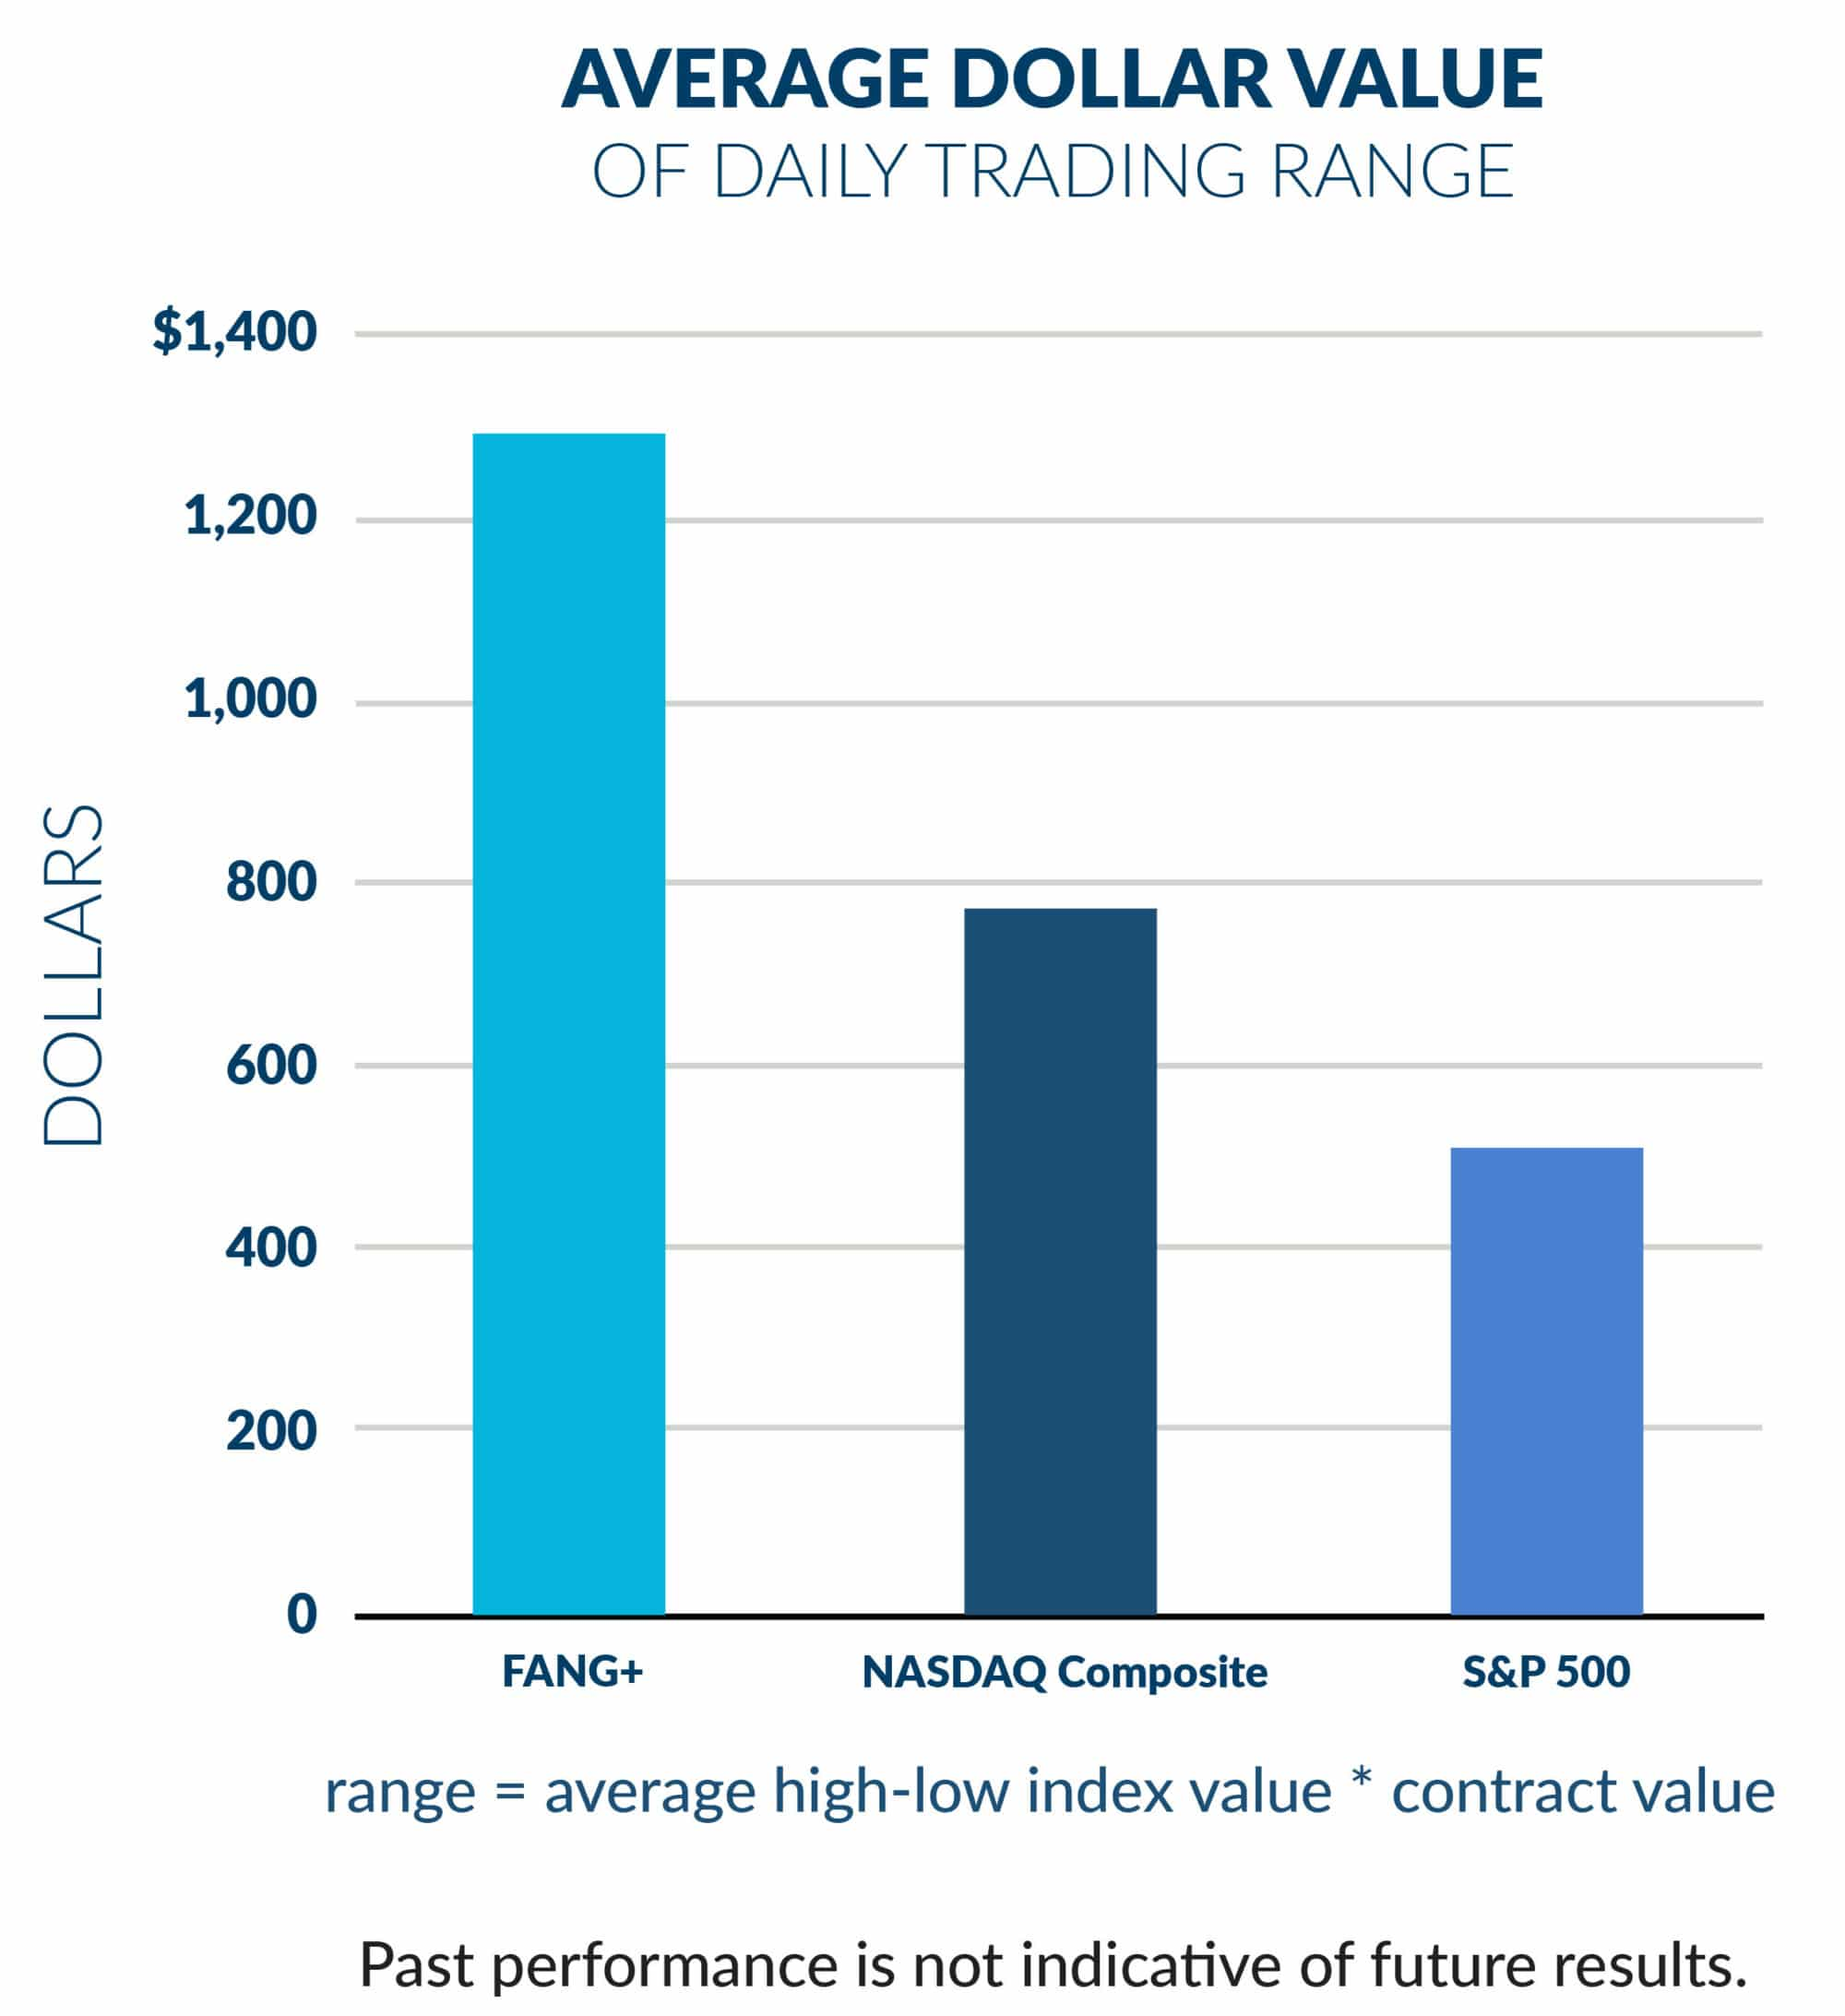 Average Dollar Value of FANG Index Futures emini SP NASDAQ